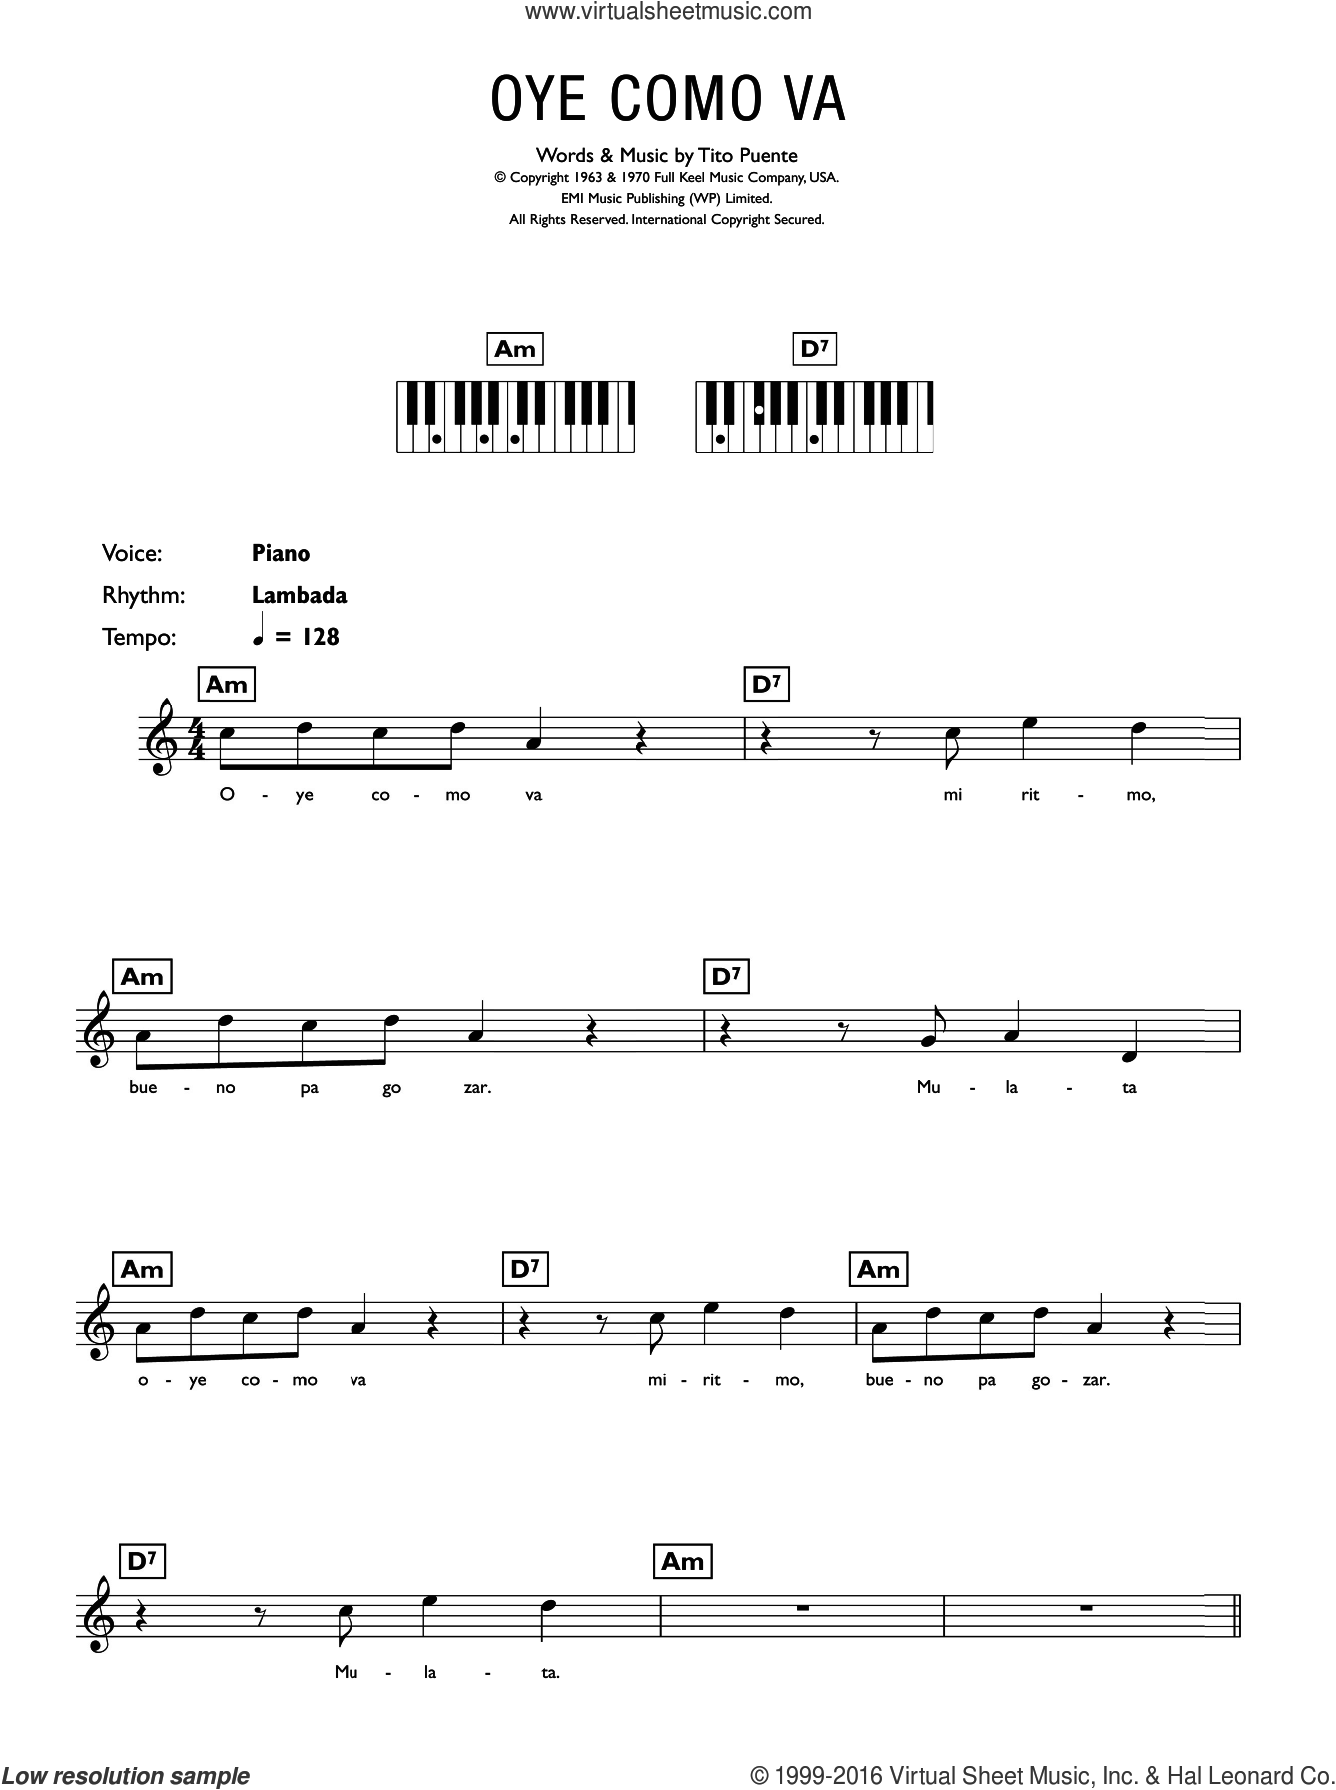 Oye Como Va sheet music for piano solo (chords, lyrics, melody) by Tito Puente. Score Image Preview.